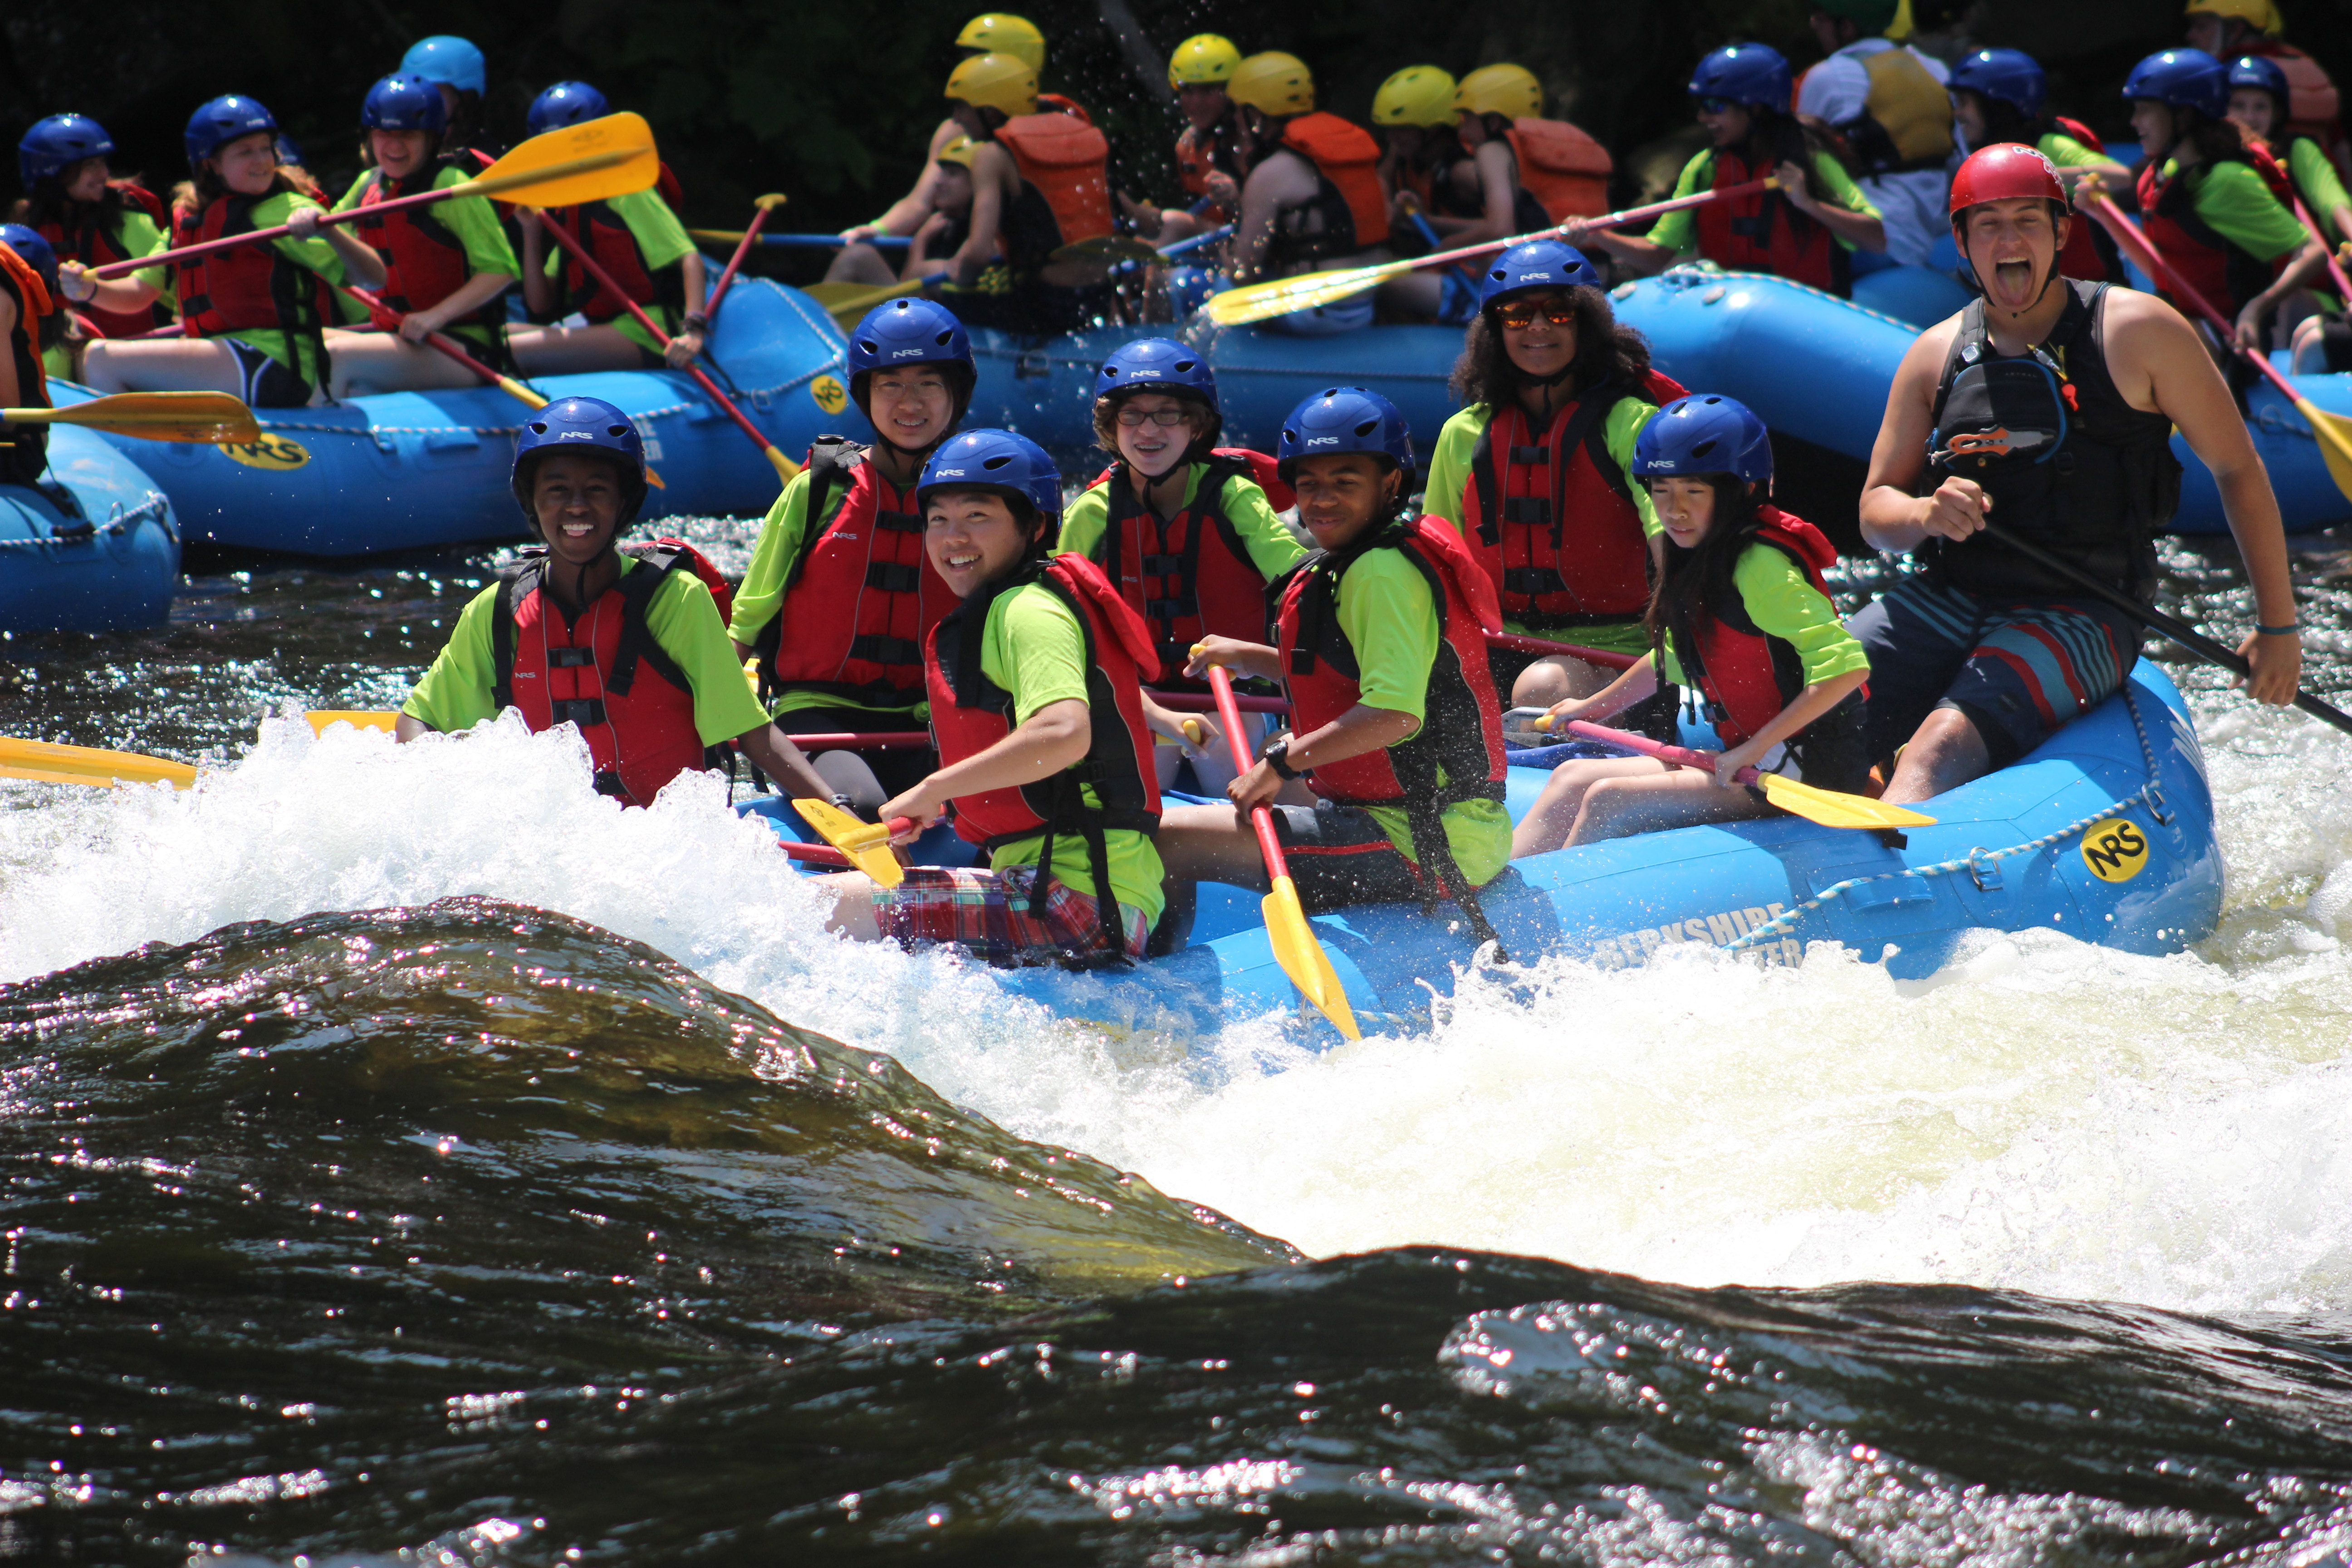 Our middle school students took a break from studies to raft down the Deerfield River.